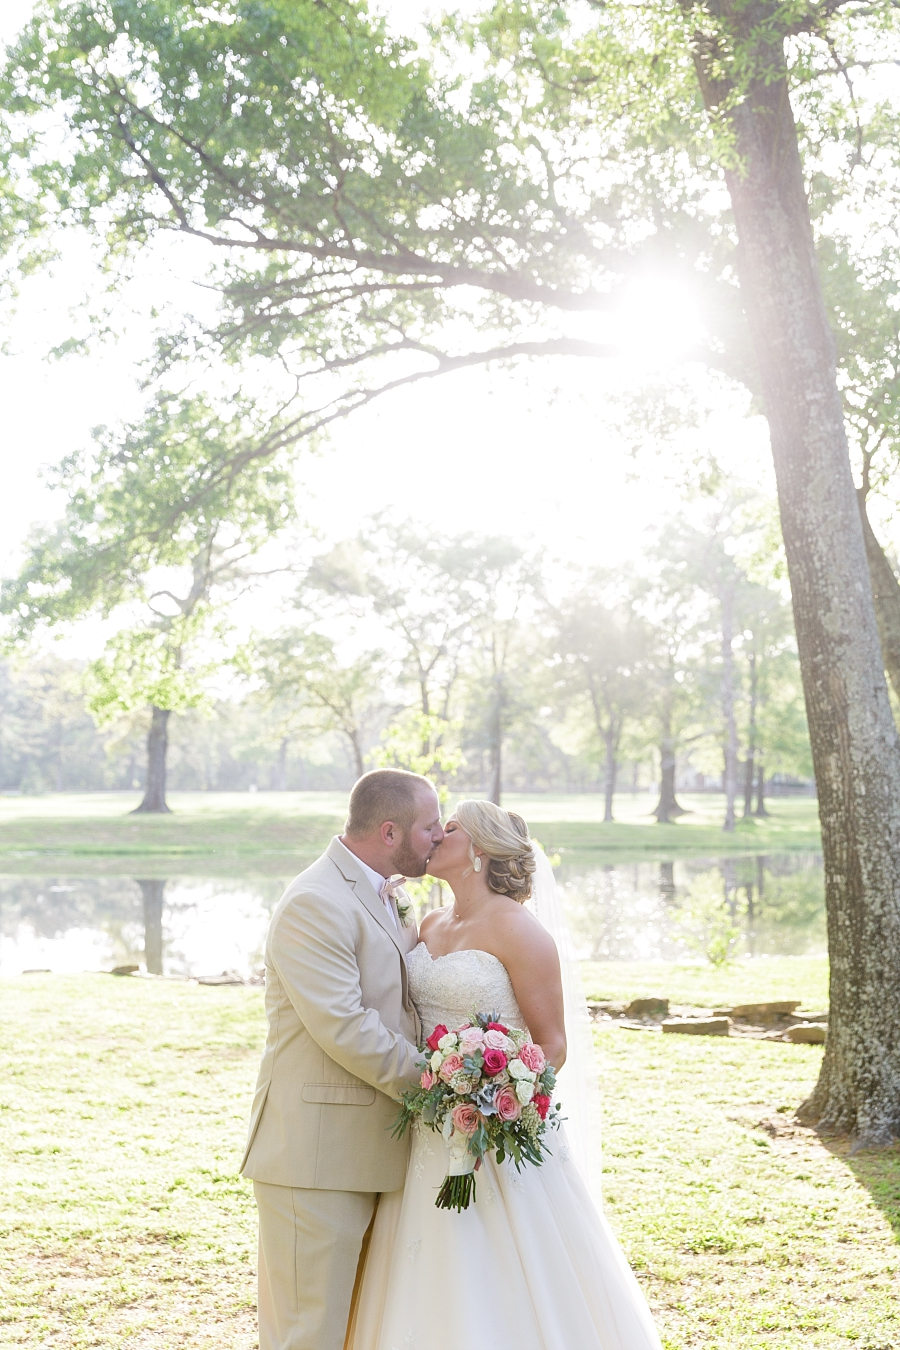 Stacy-Anderson-Photography-Balmorhea-Houston-Wedding-Photographer_0068.jpg